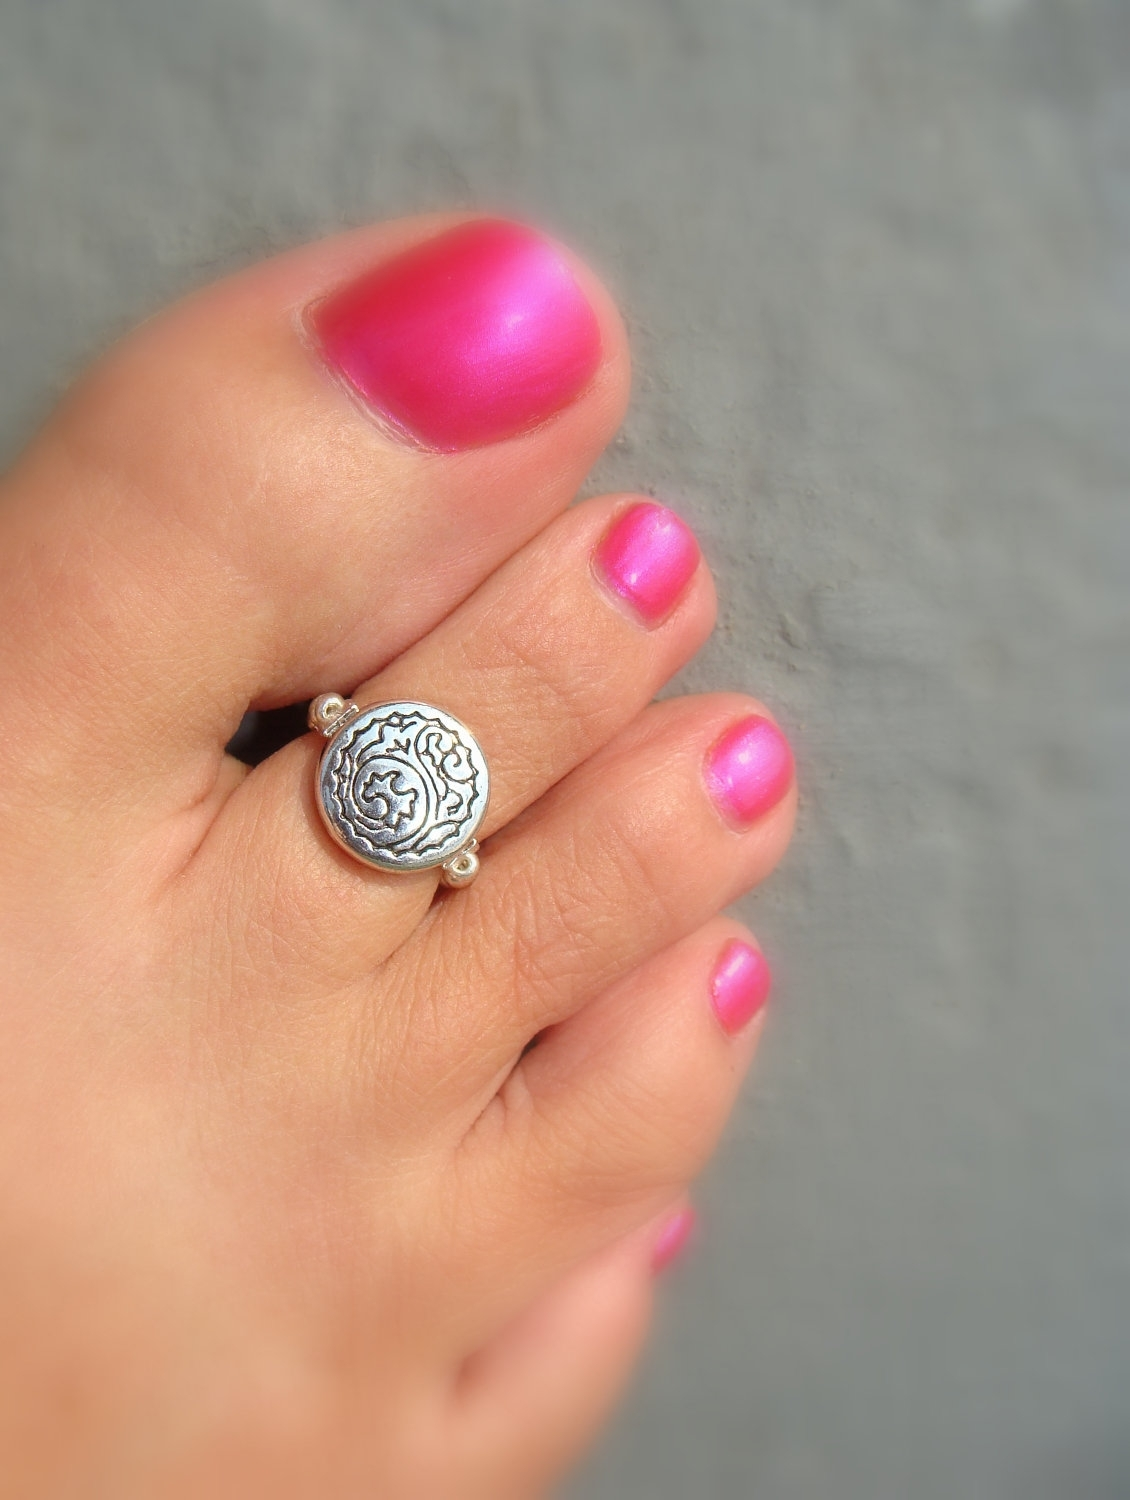 Toe Ring – Silver Wind Wave Coin Stretch Bead Toe Ring | Toe Rings Intended For Recent Toe Rings With Diamonds (View 12 of 15)